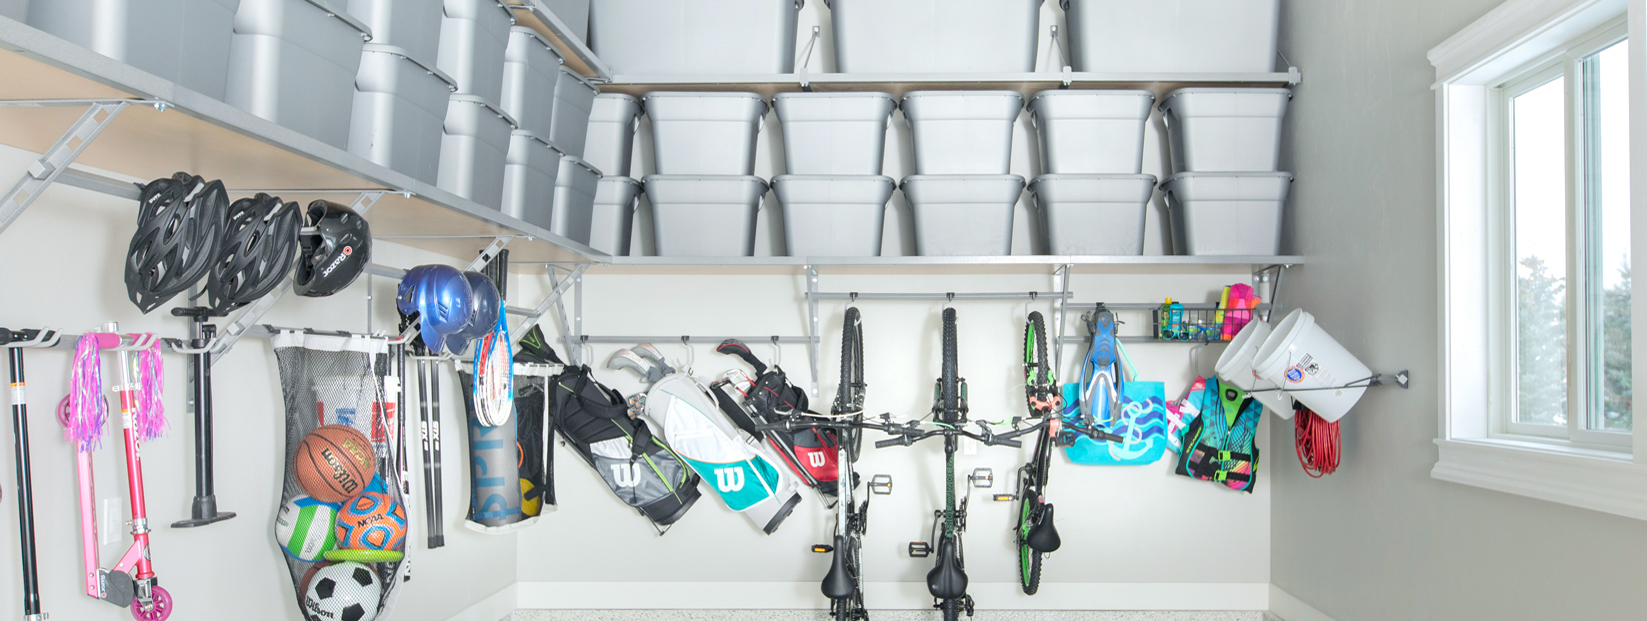 Garage Shelving Logan